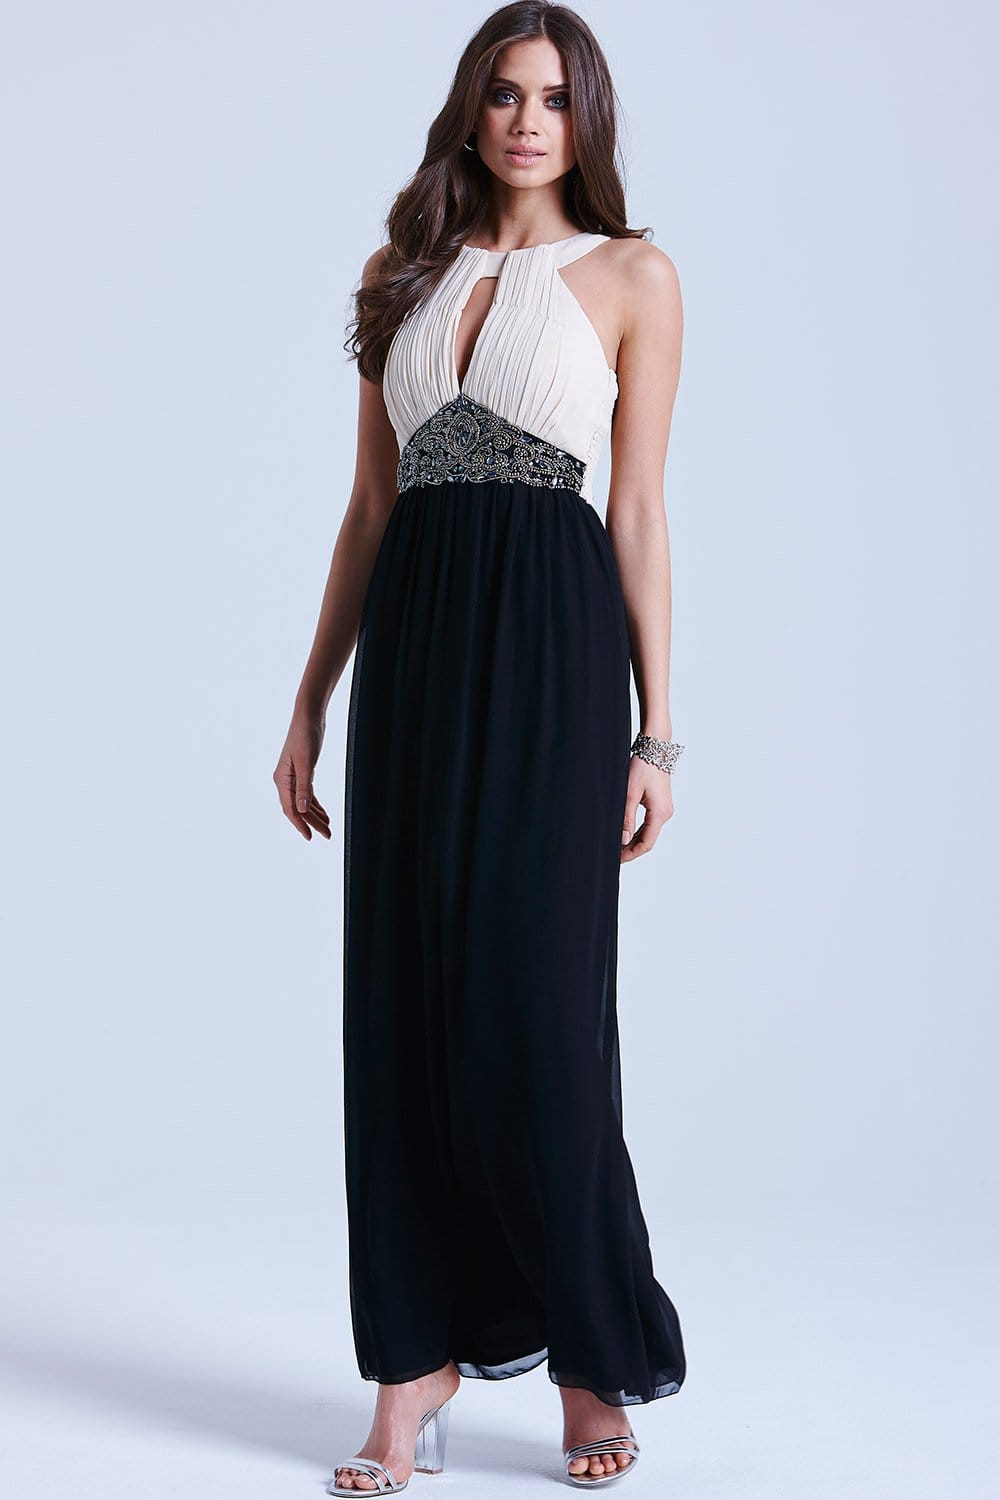 Little Mistress Black & White Embellished Maxi Dress - Little ...